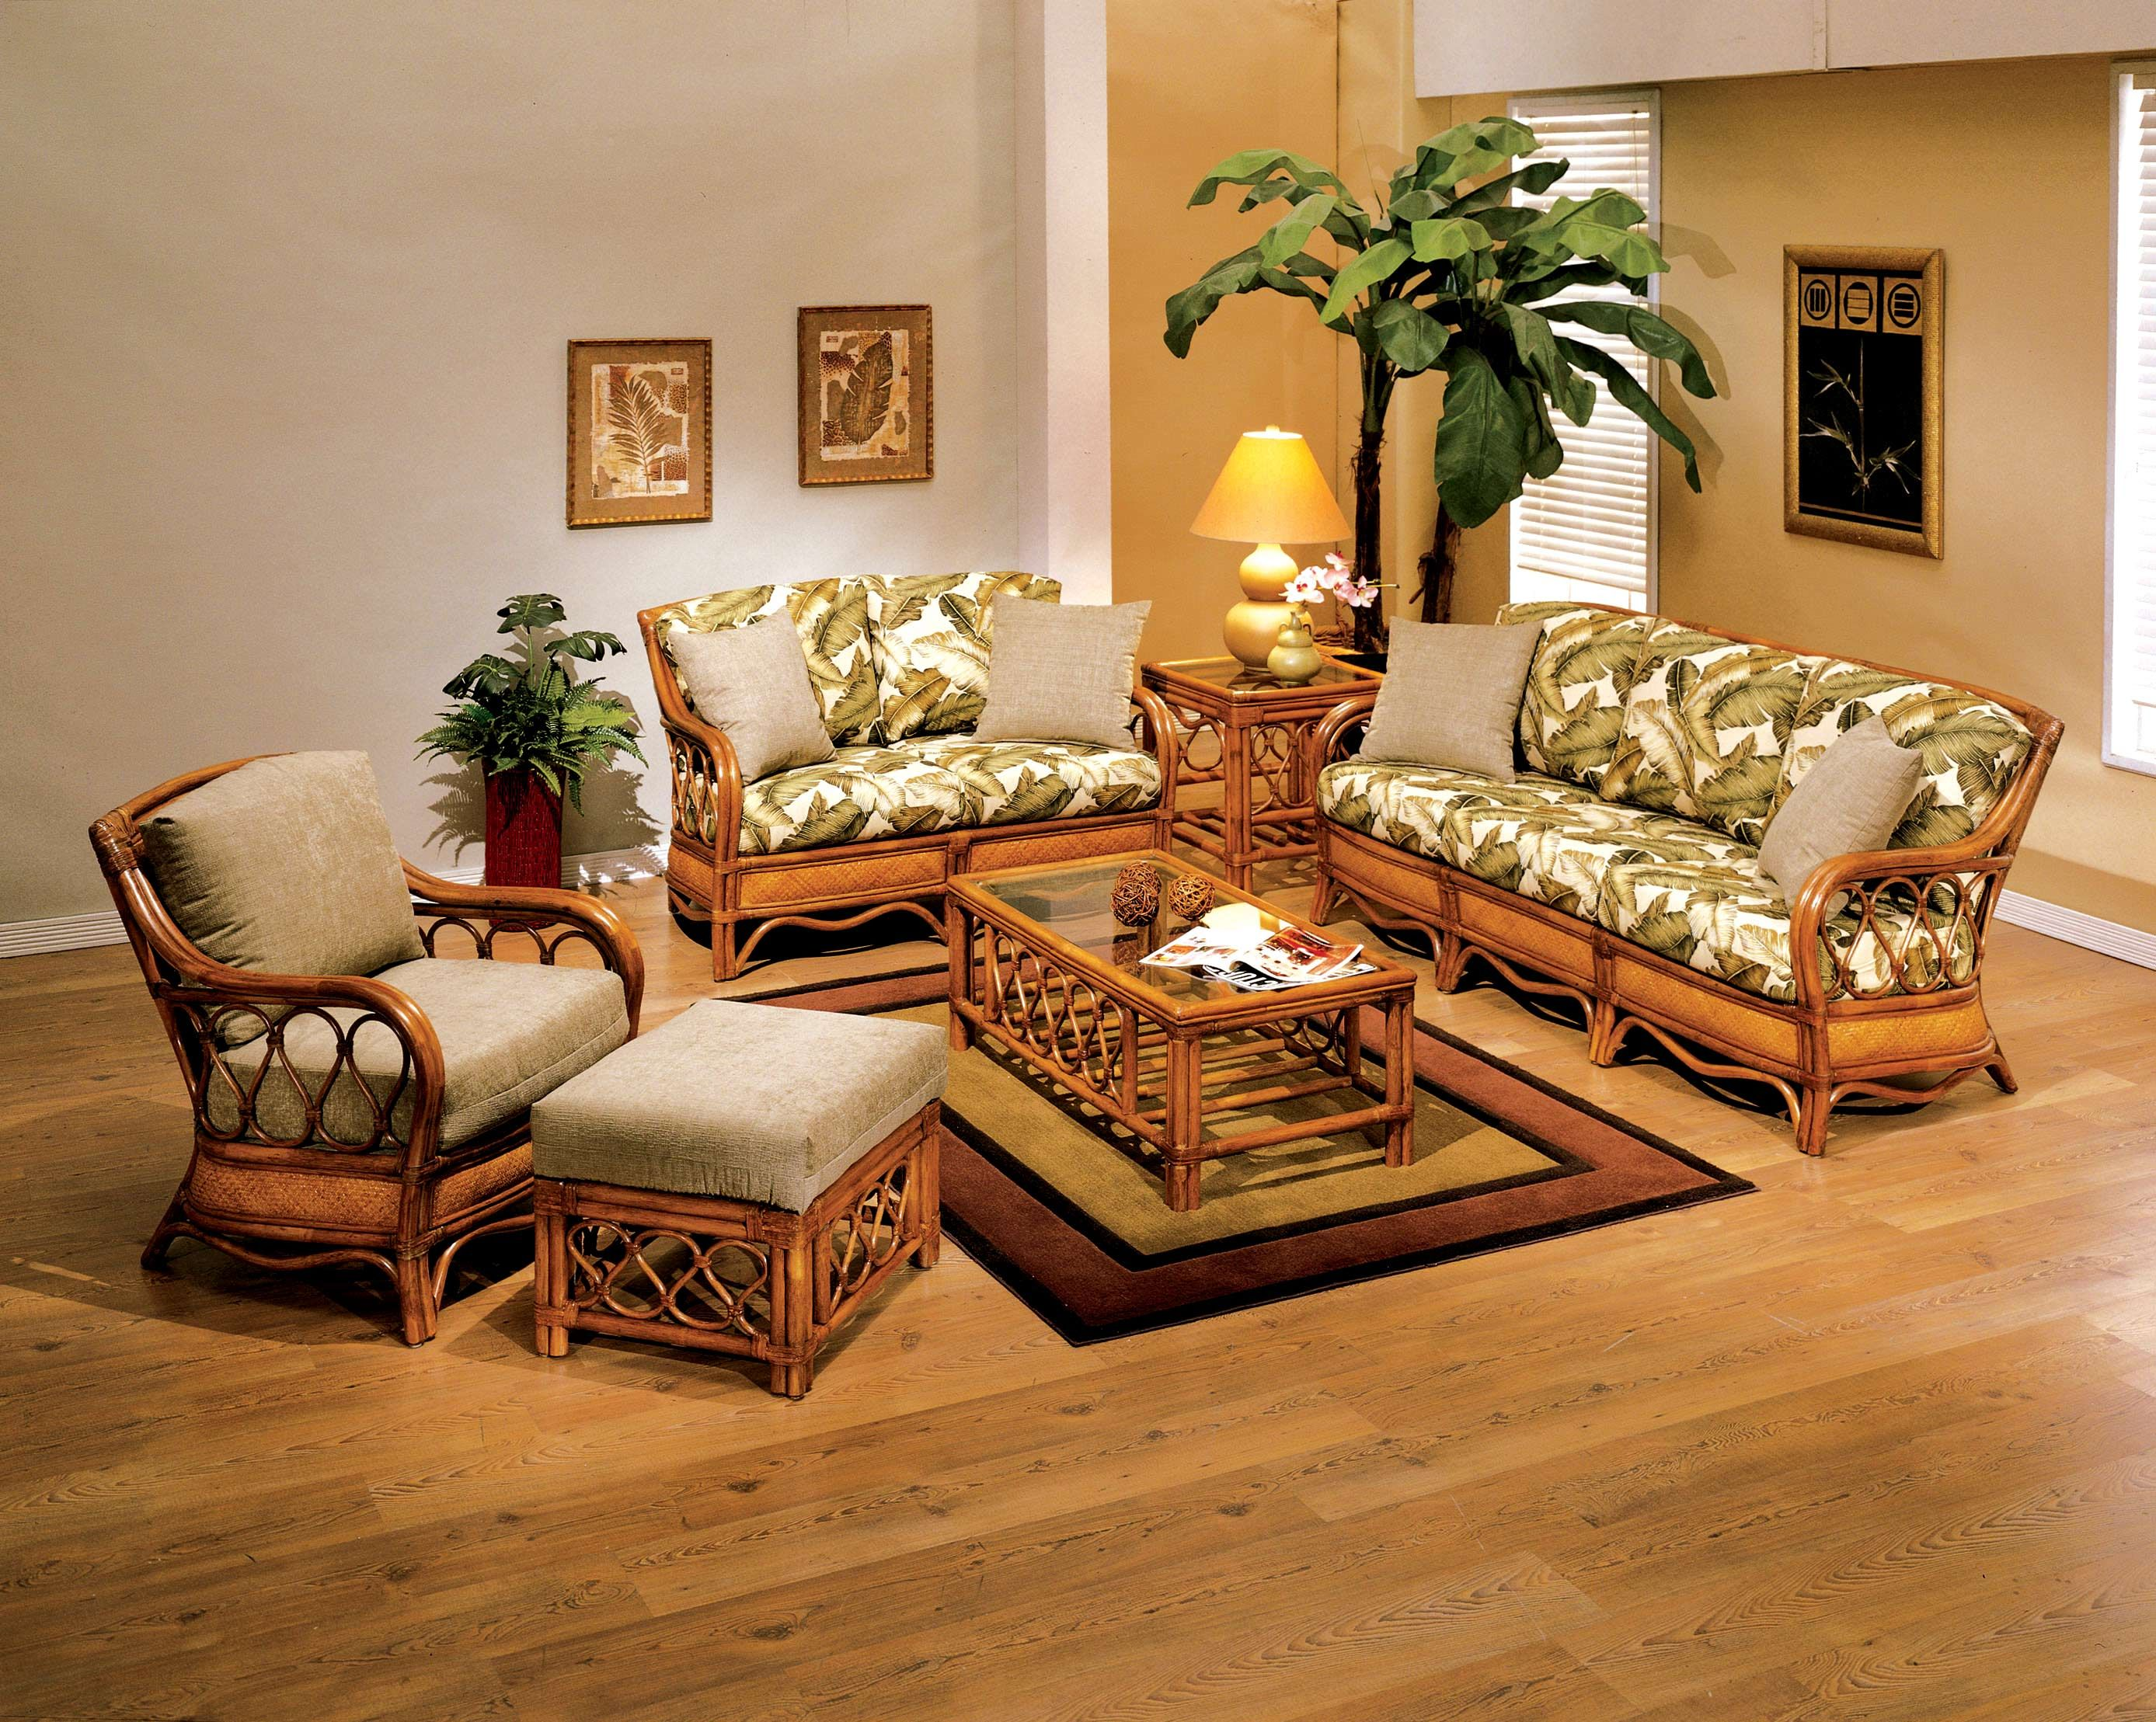 Cane Furniture Decor Ideas